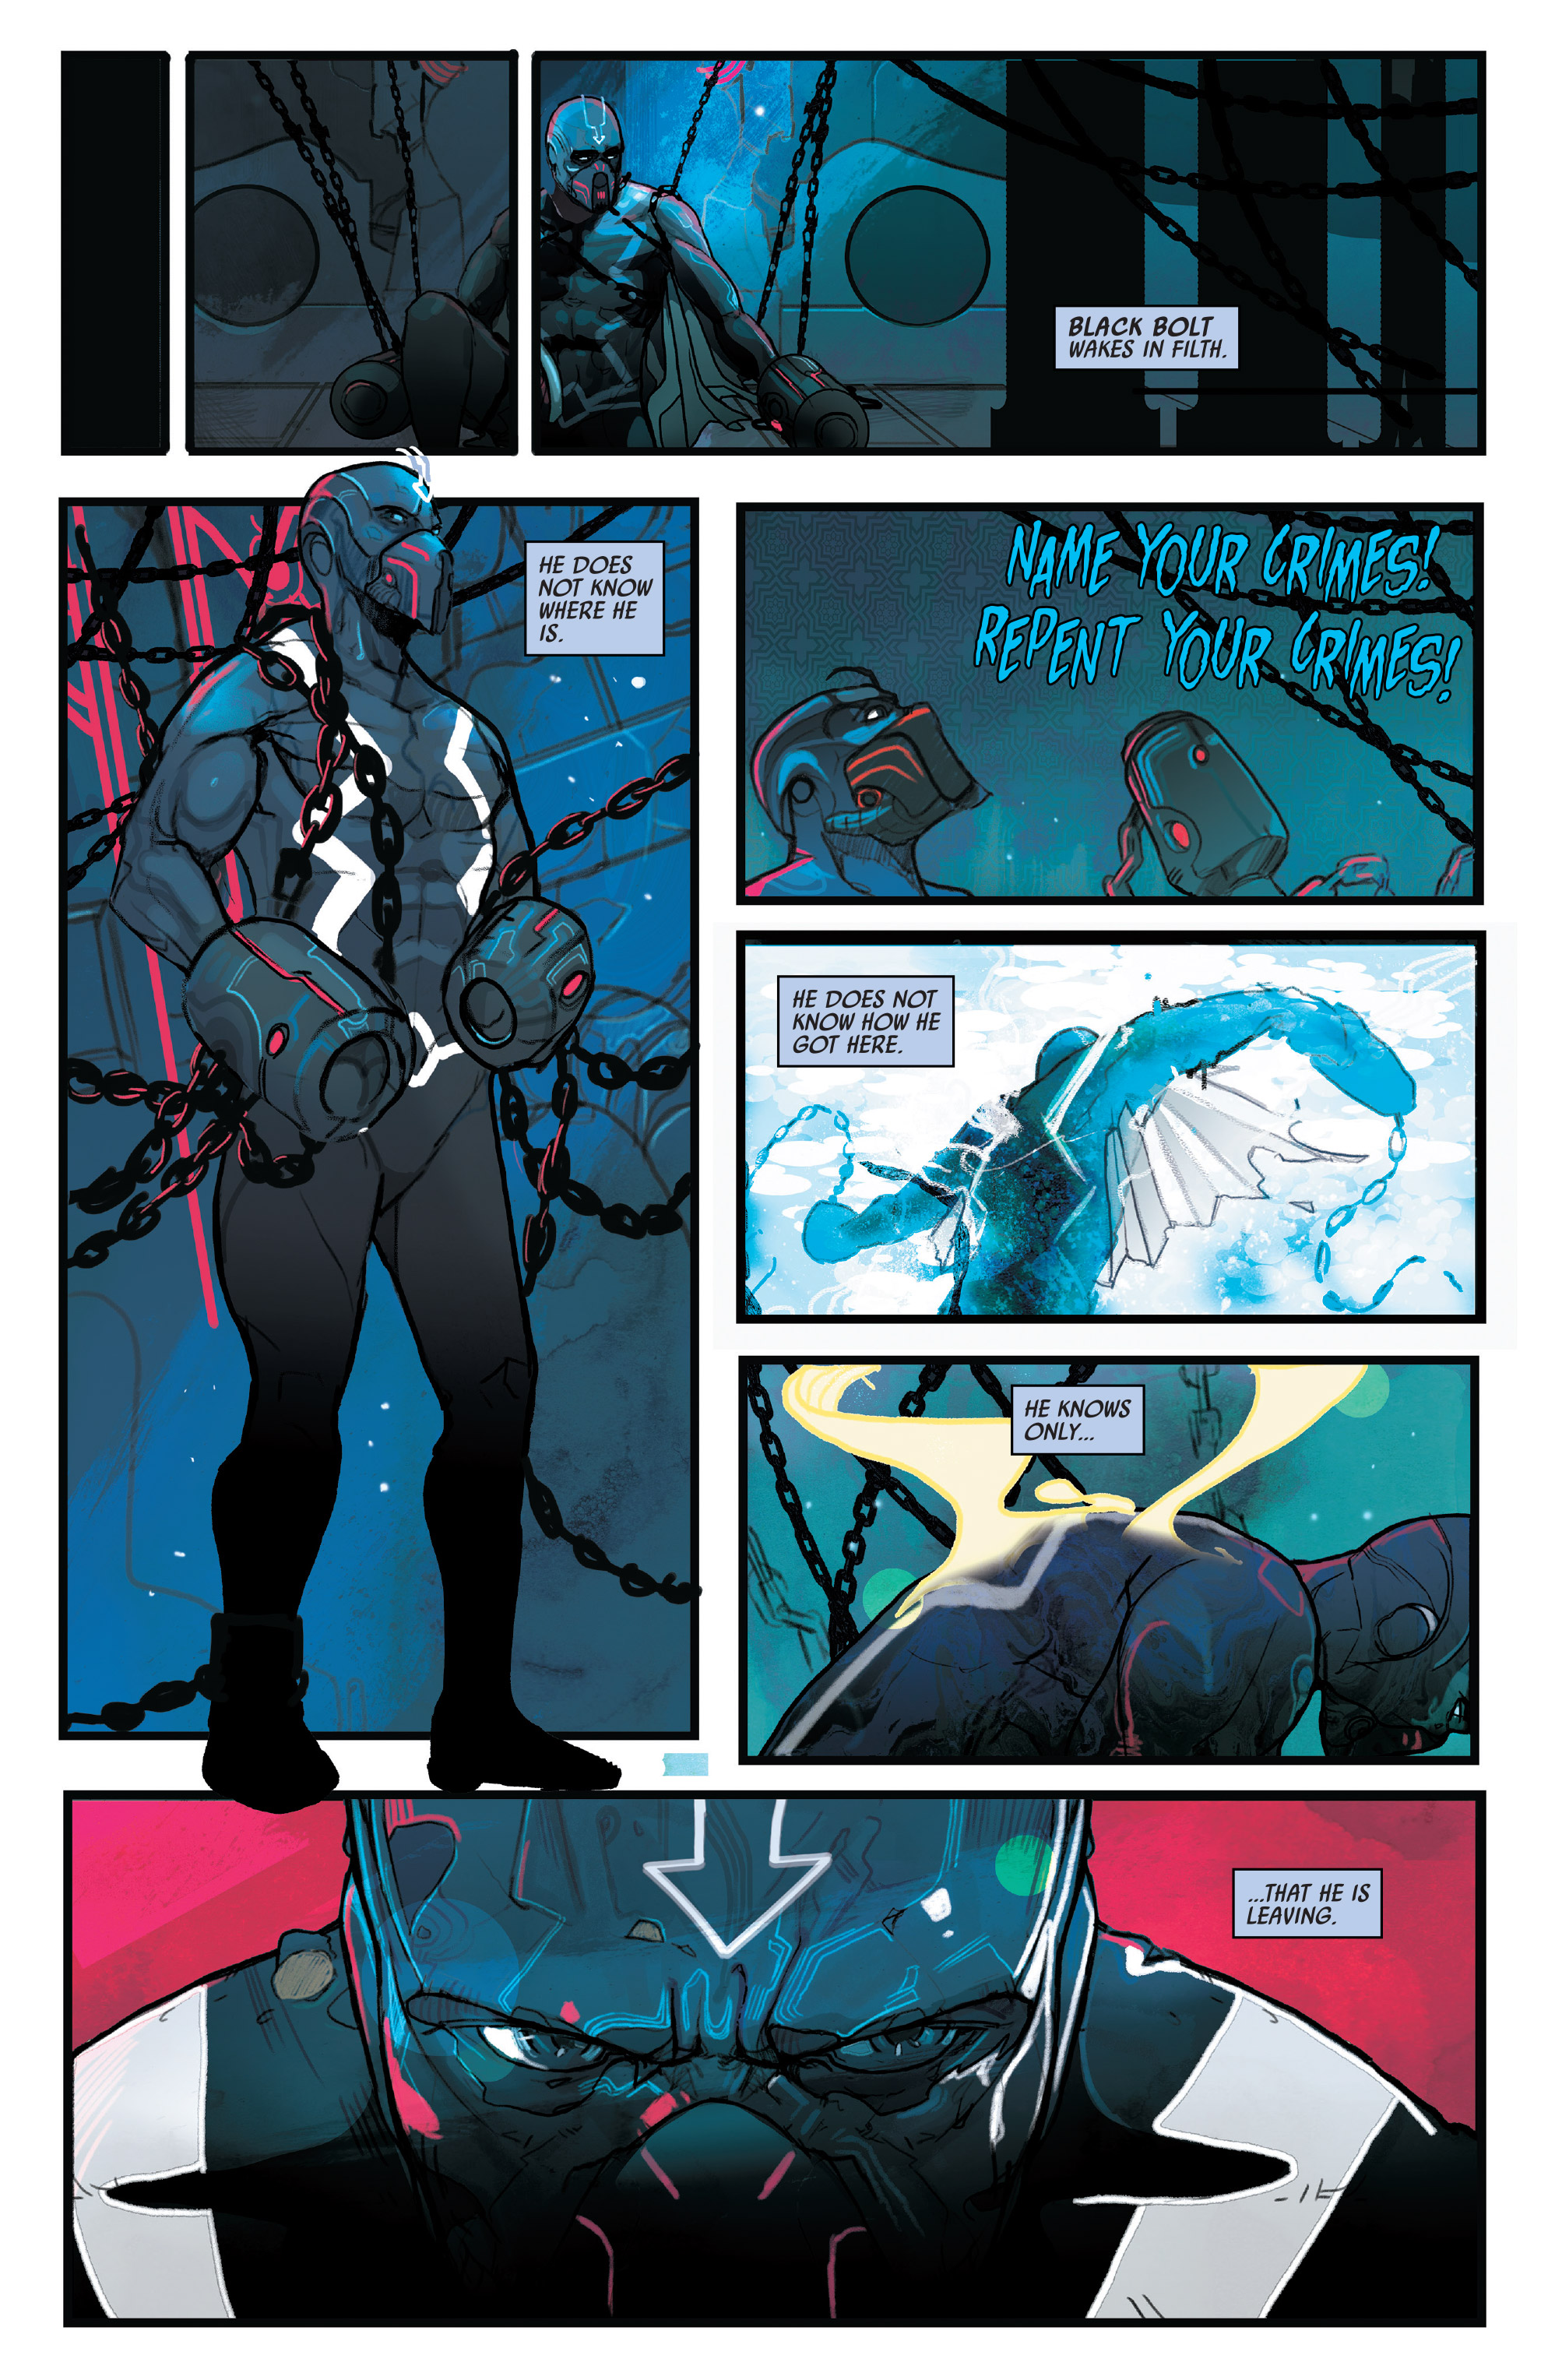 Read online Black Bolt comic -  Issue #1 - 6